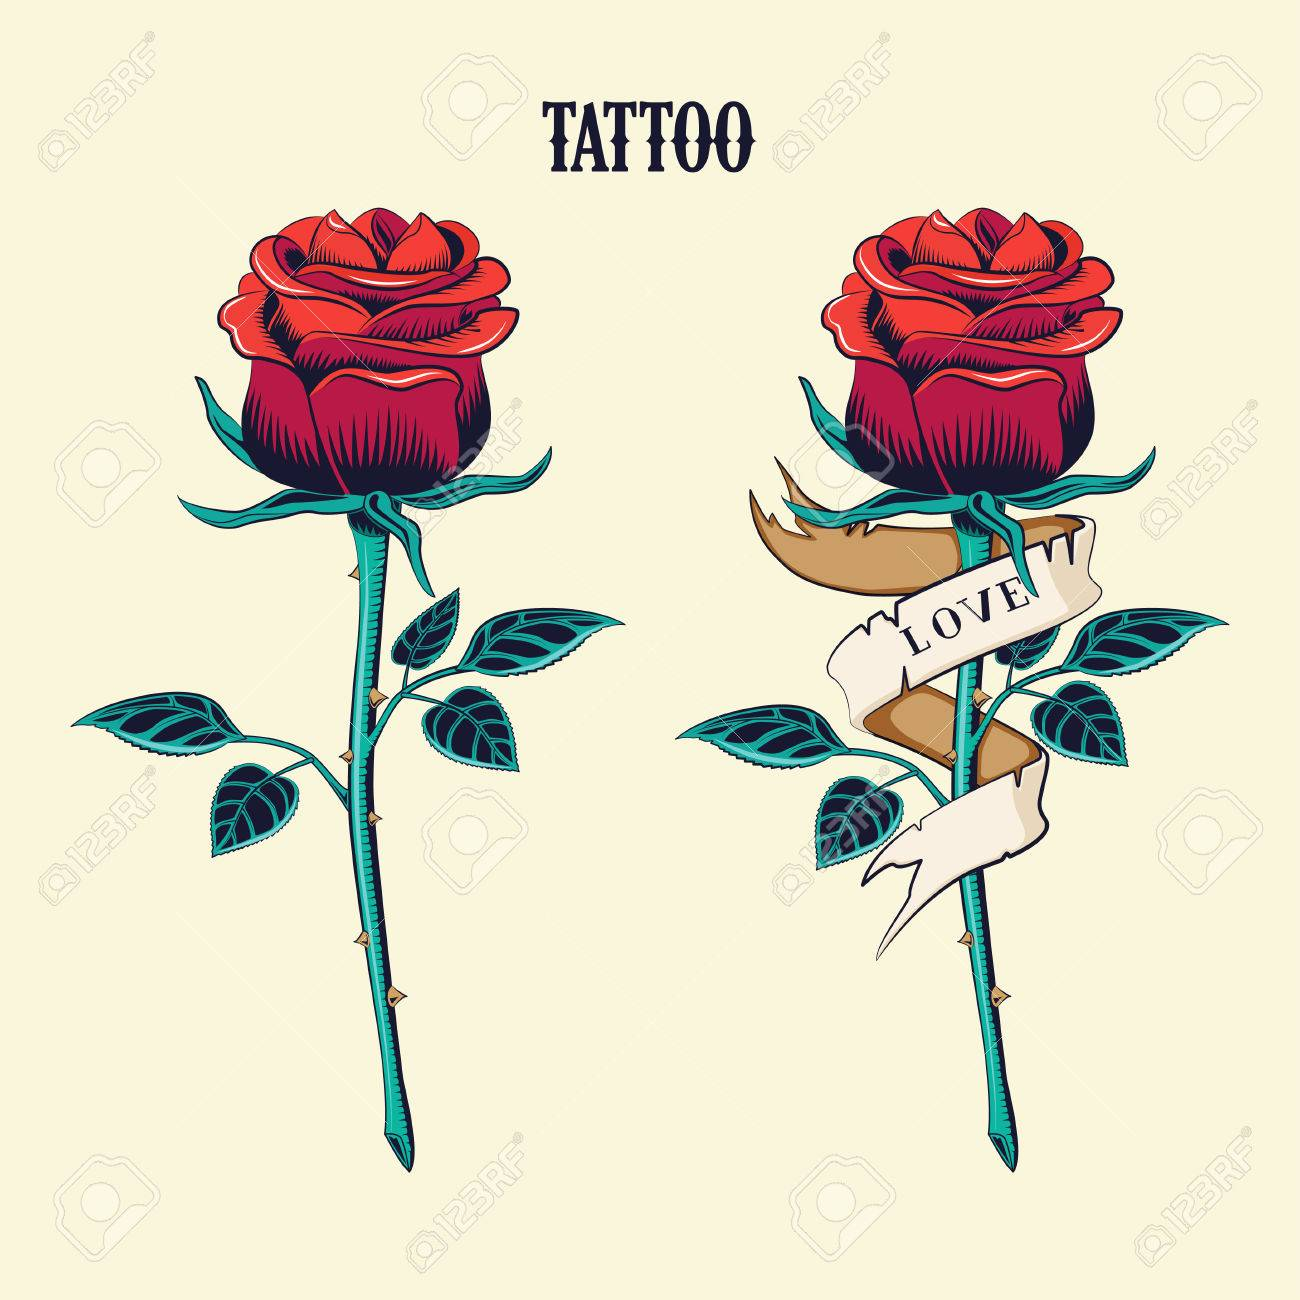 Tattoo Set Isolated Tattoo Roses Old School Tattooing Style